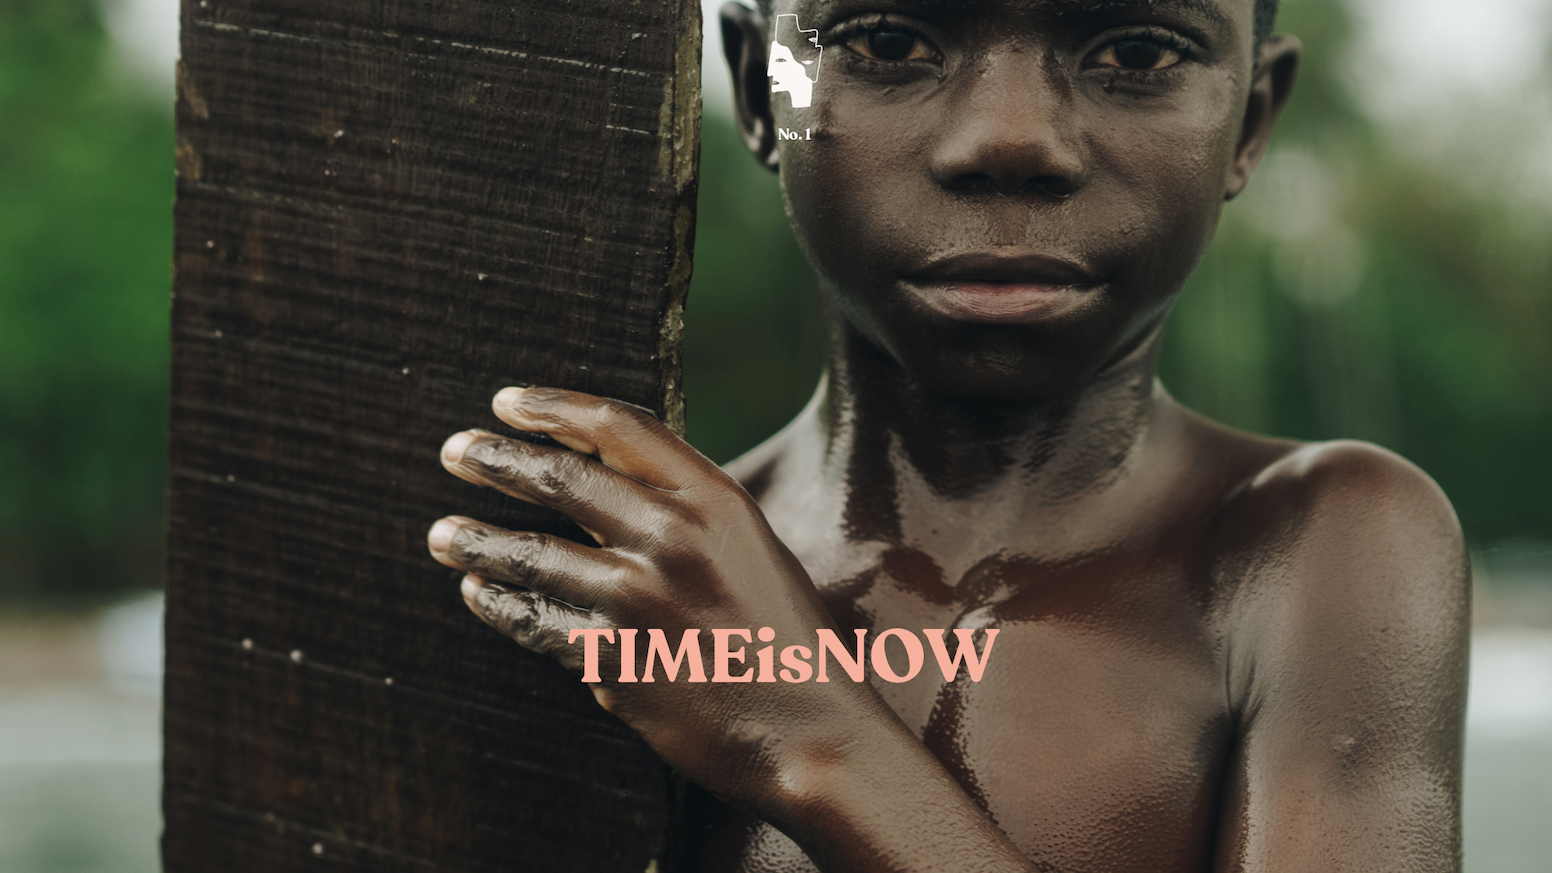 Support the first Surfers Collective Mag & the environmental short film TIMEisNOW (a collaborative project)